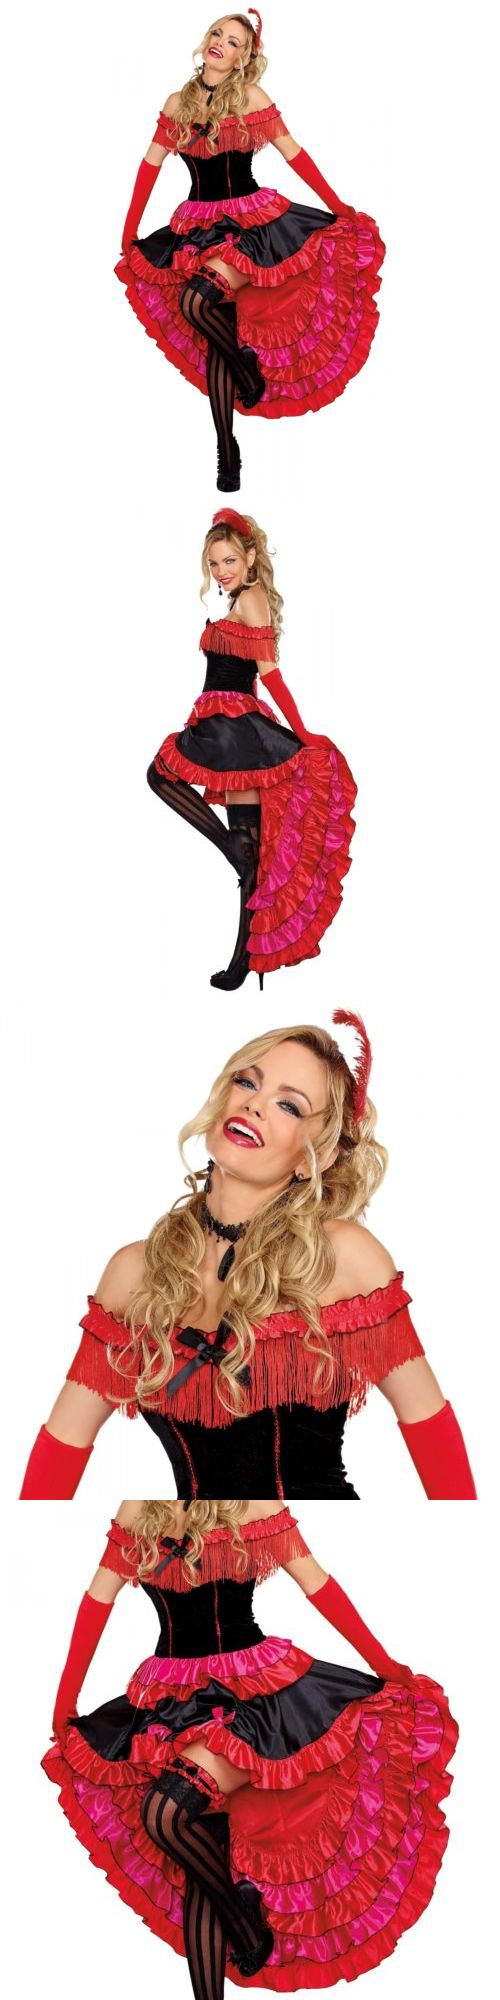 Women Costumes: Saloon Girl Costume Adult Can Can Dancer Halloween Fancy Dress -> BUY IT NOW ONLY: $33.29 on eBay!